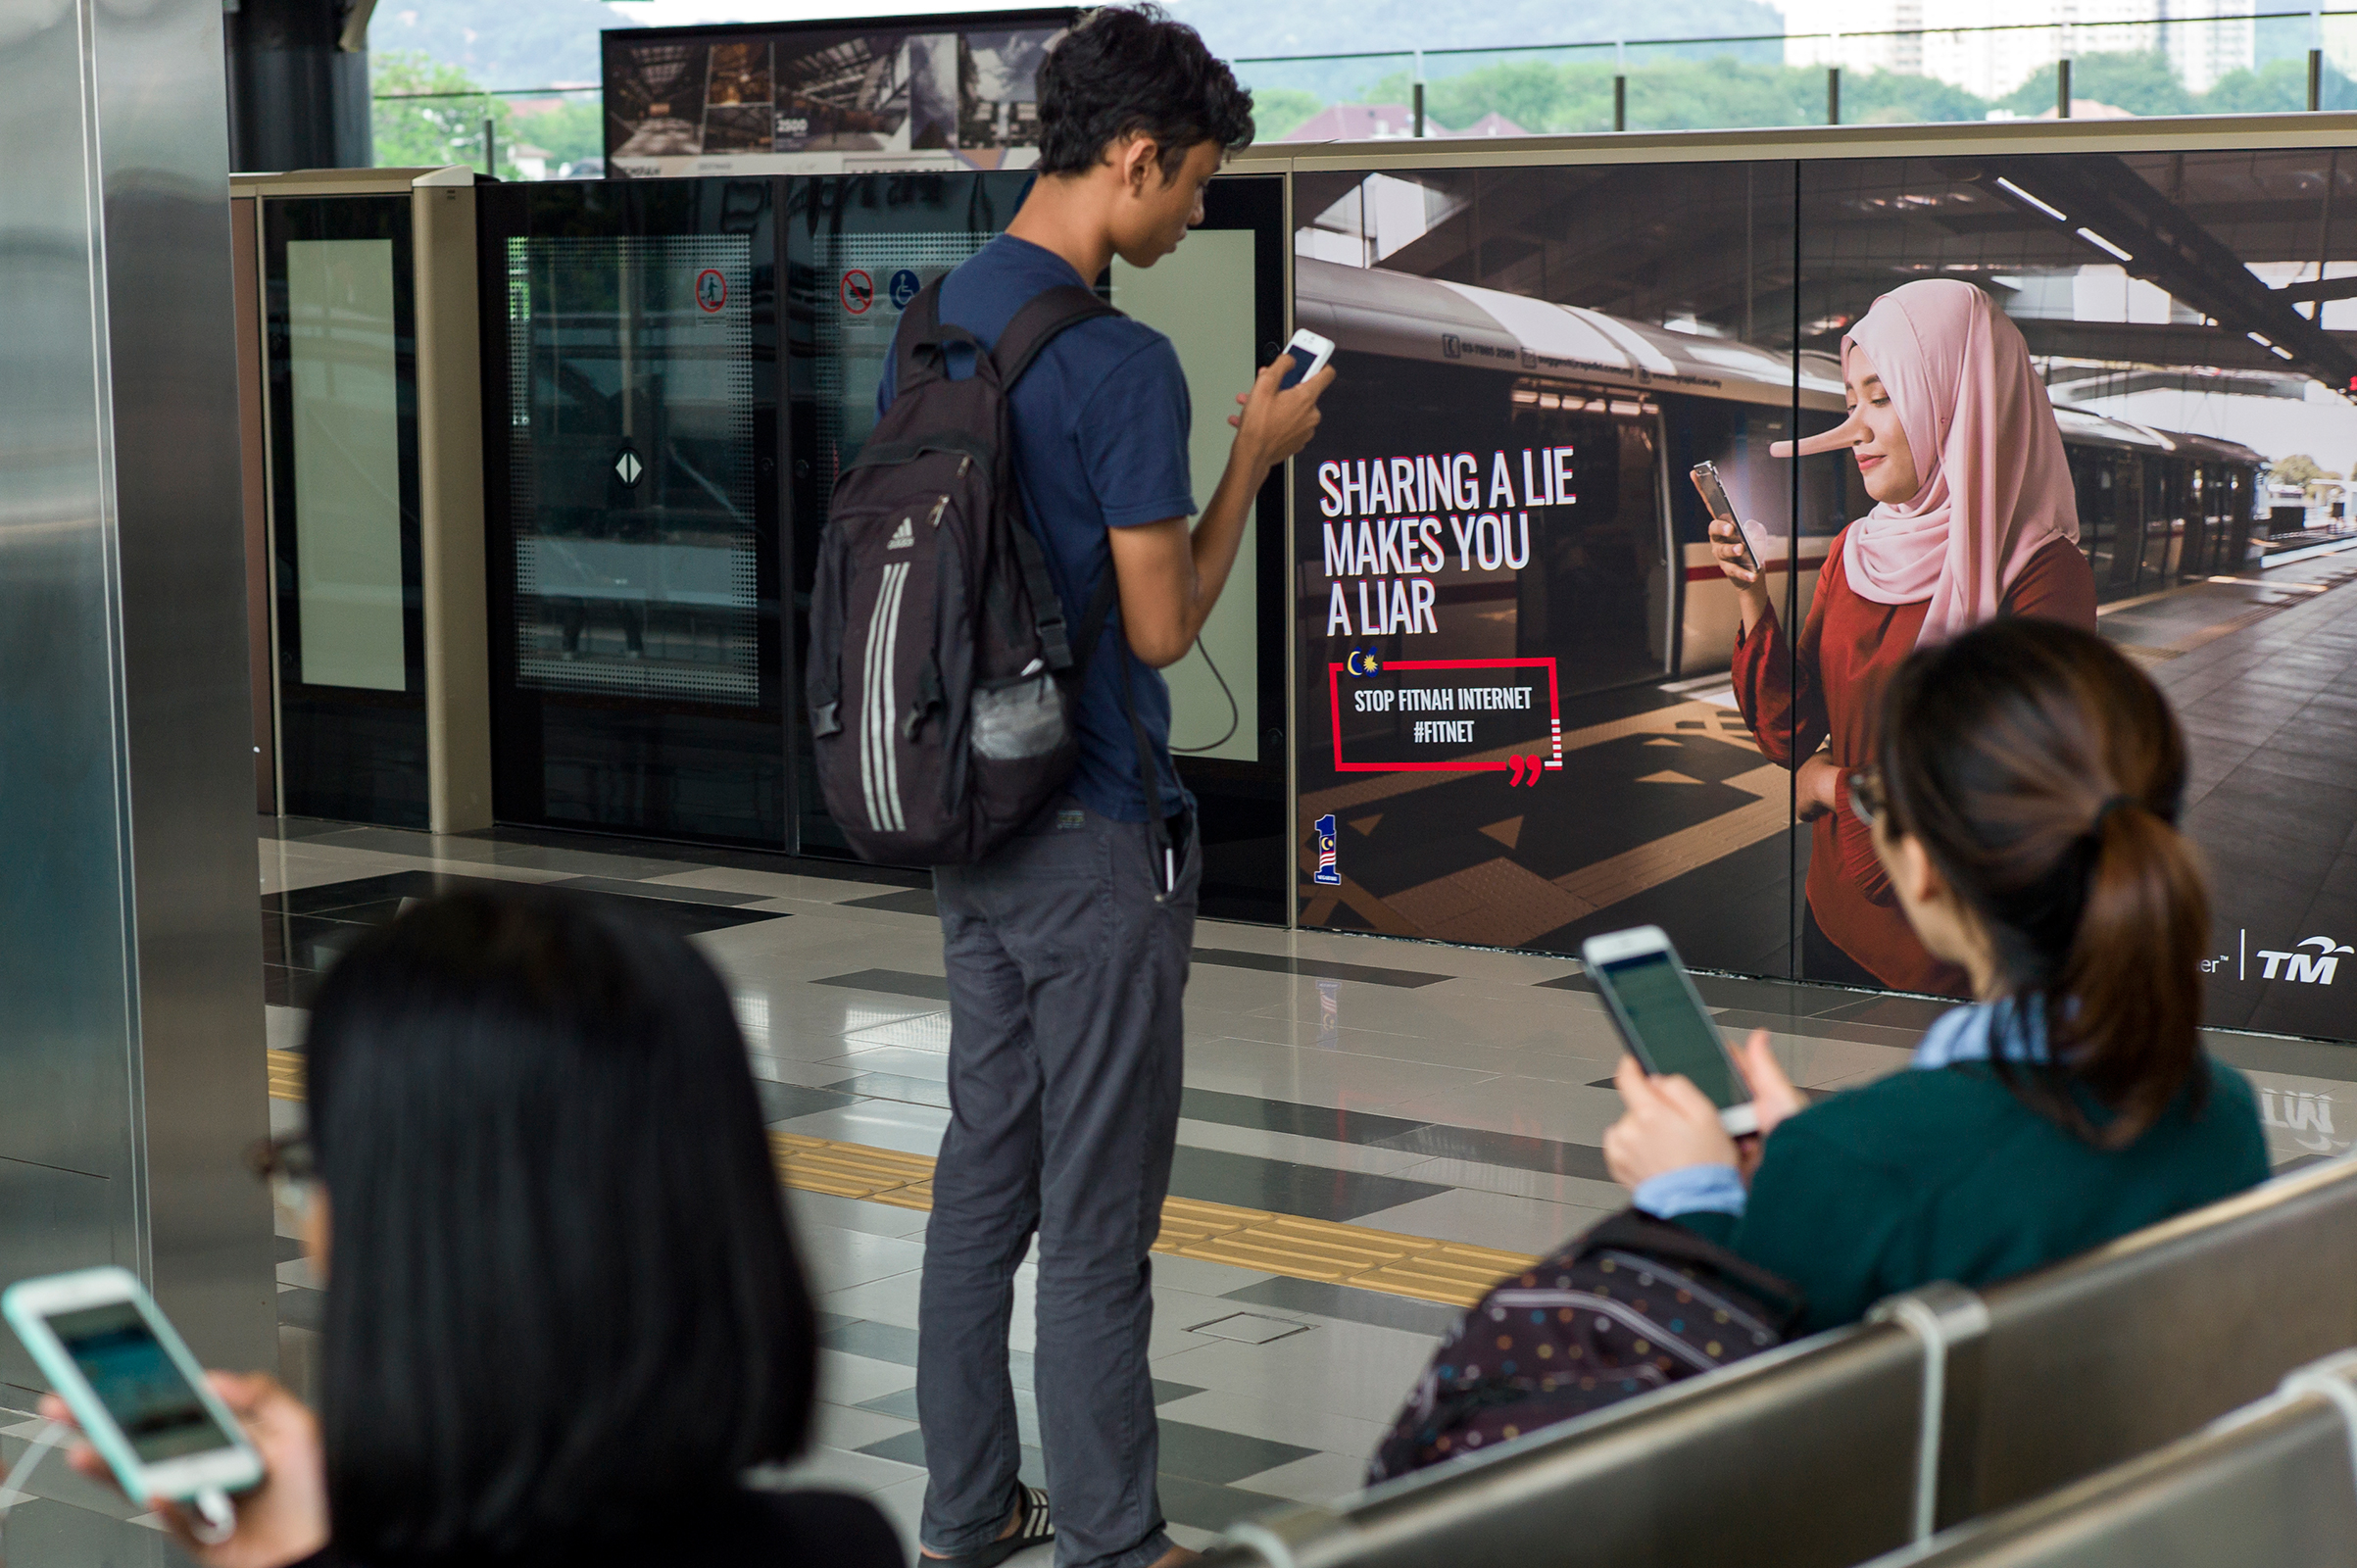 Commuters use their smartphones near an advertisement that reads  SHARING A LIE MAKES YOU A LIAR  at a train station in Kuala Lumpur on March 26, 2018.